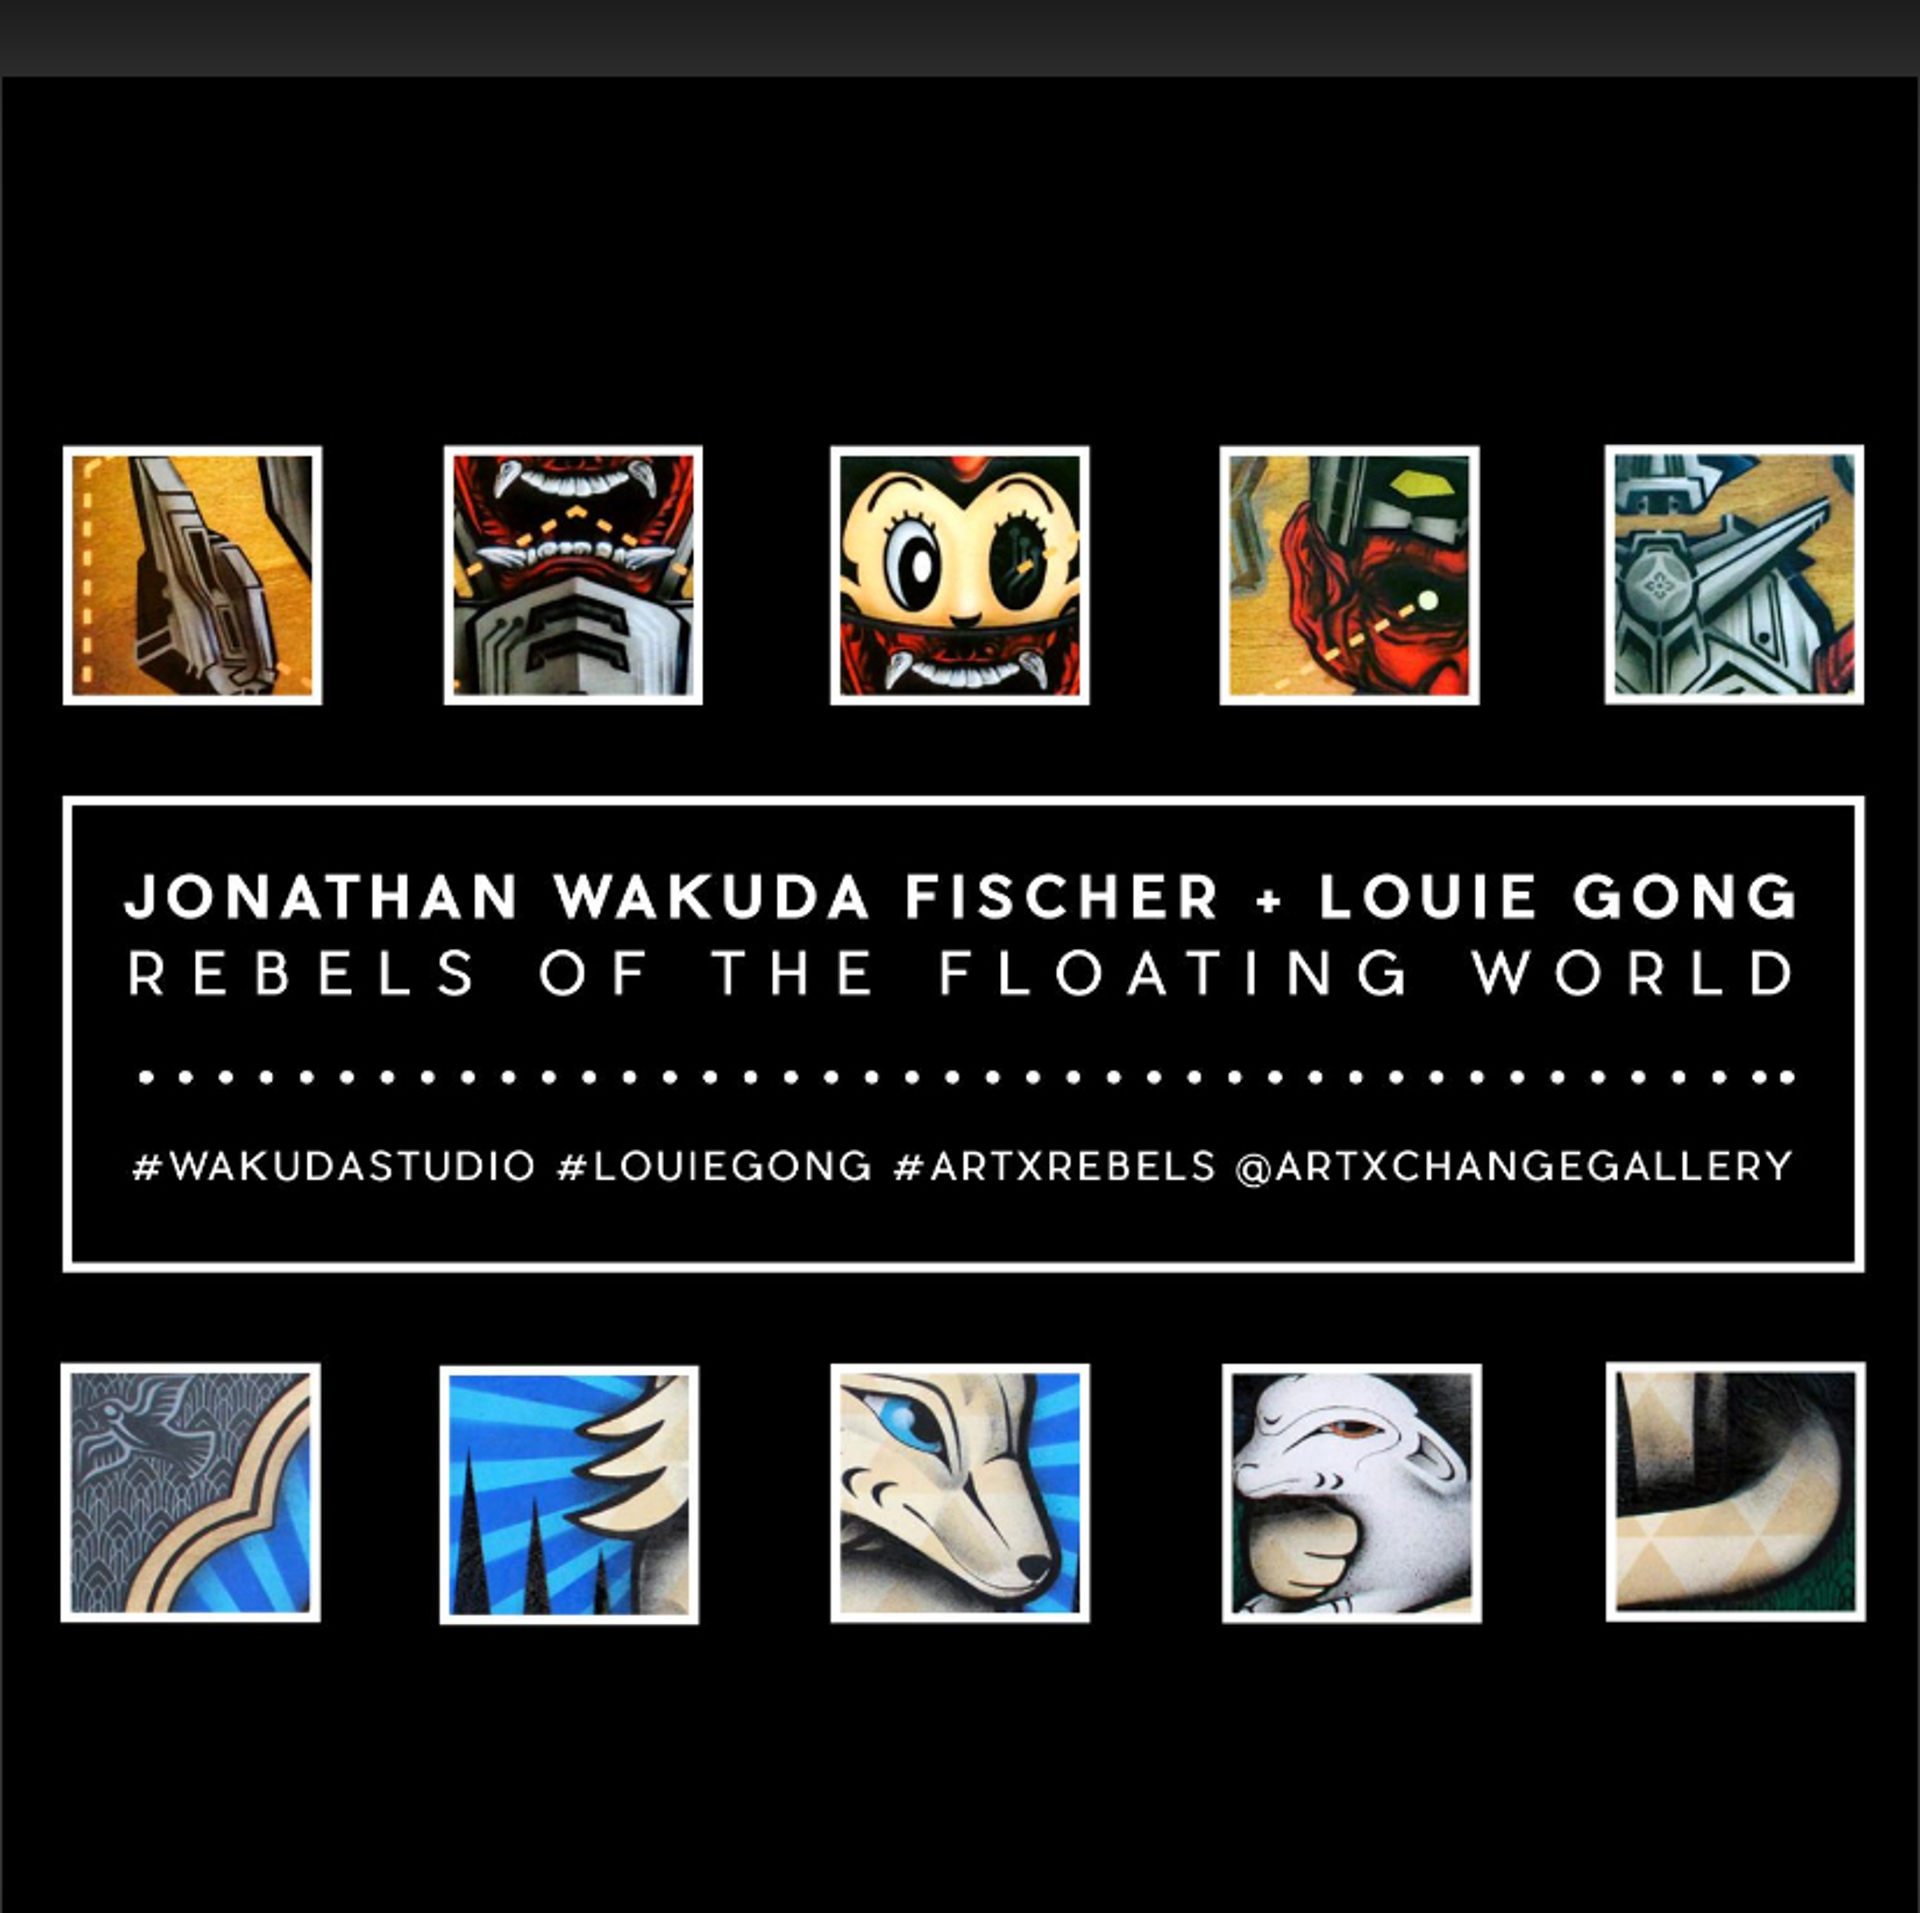 Rebels of the Floating World | exhibition catalog by Jonathan Wakuda Fischer